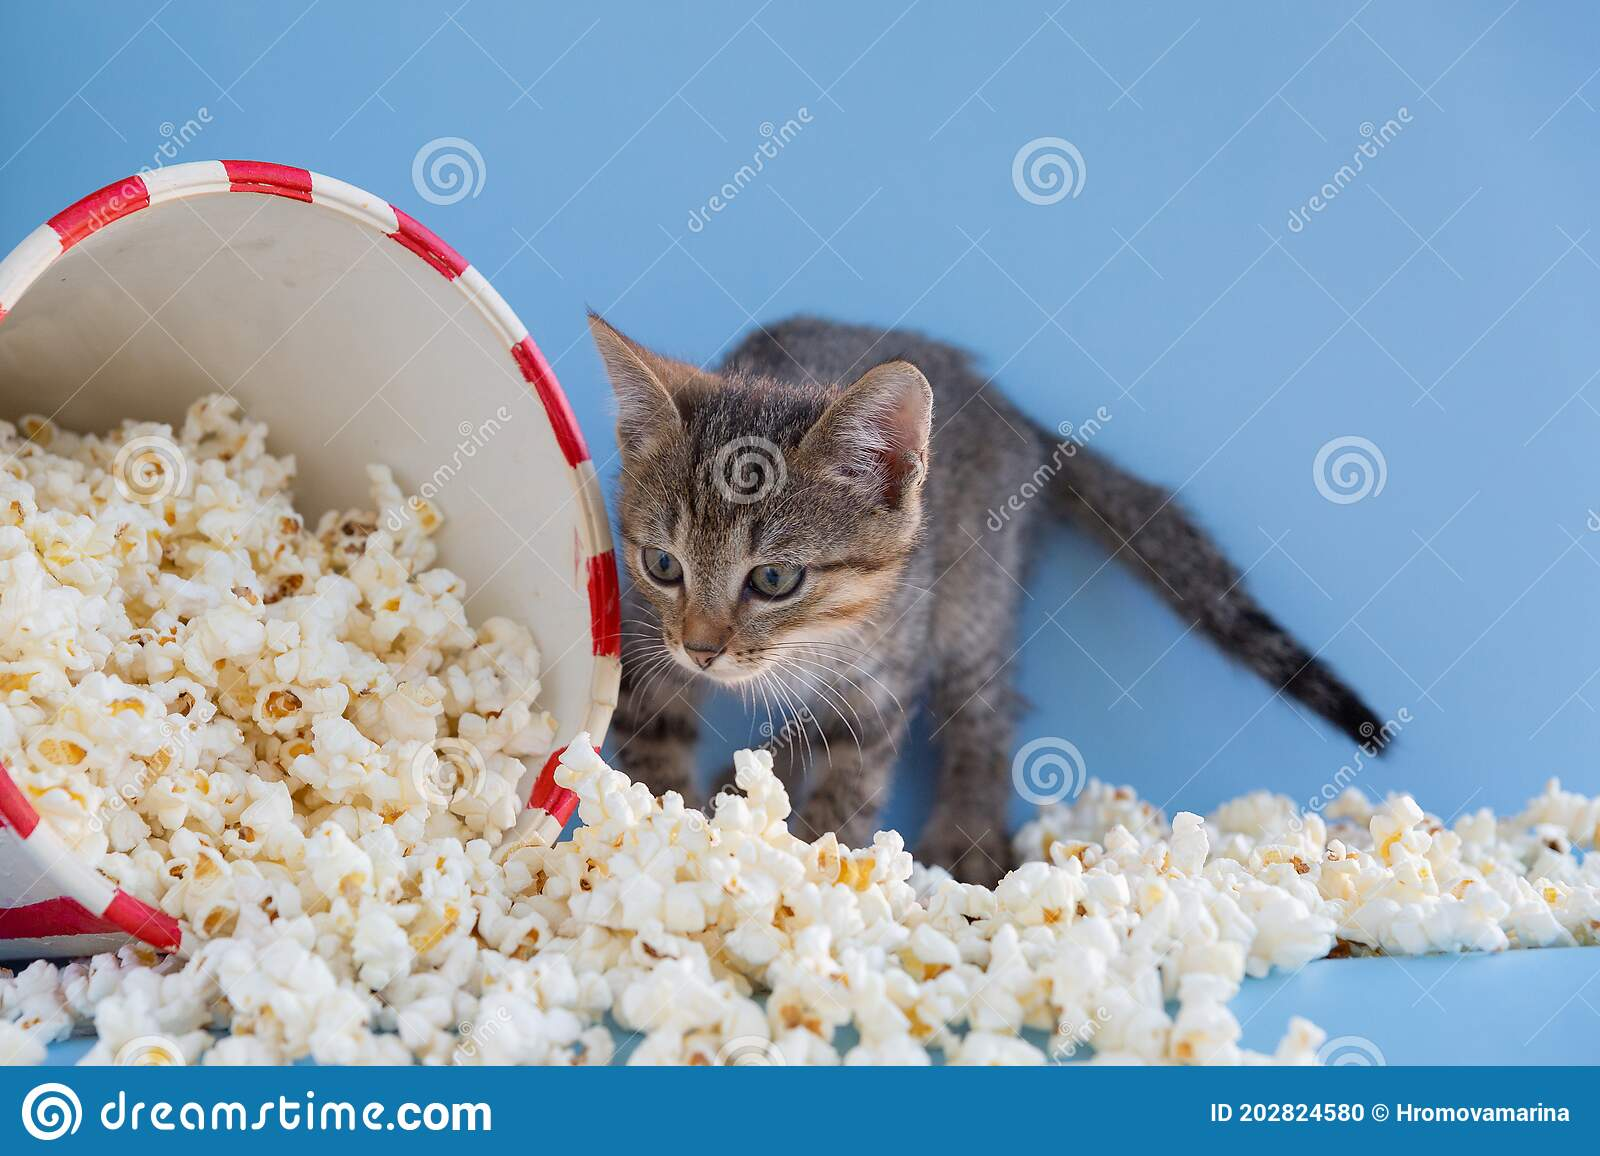 Kitten Sprinkled A Bucket Of Popcorn On A Blue Background Stock Photo Image Of Fresh Snack 202824580